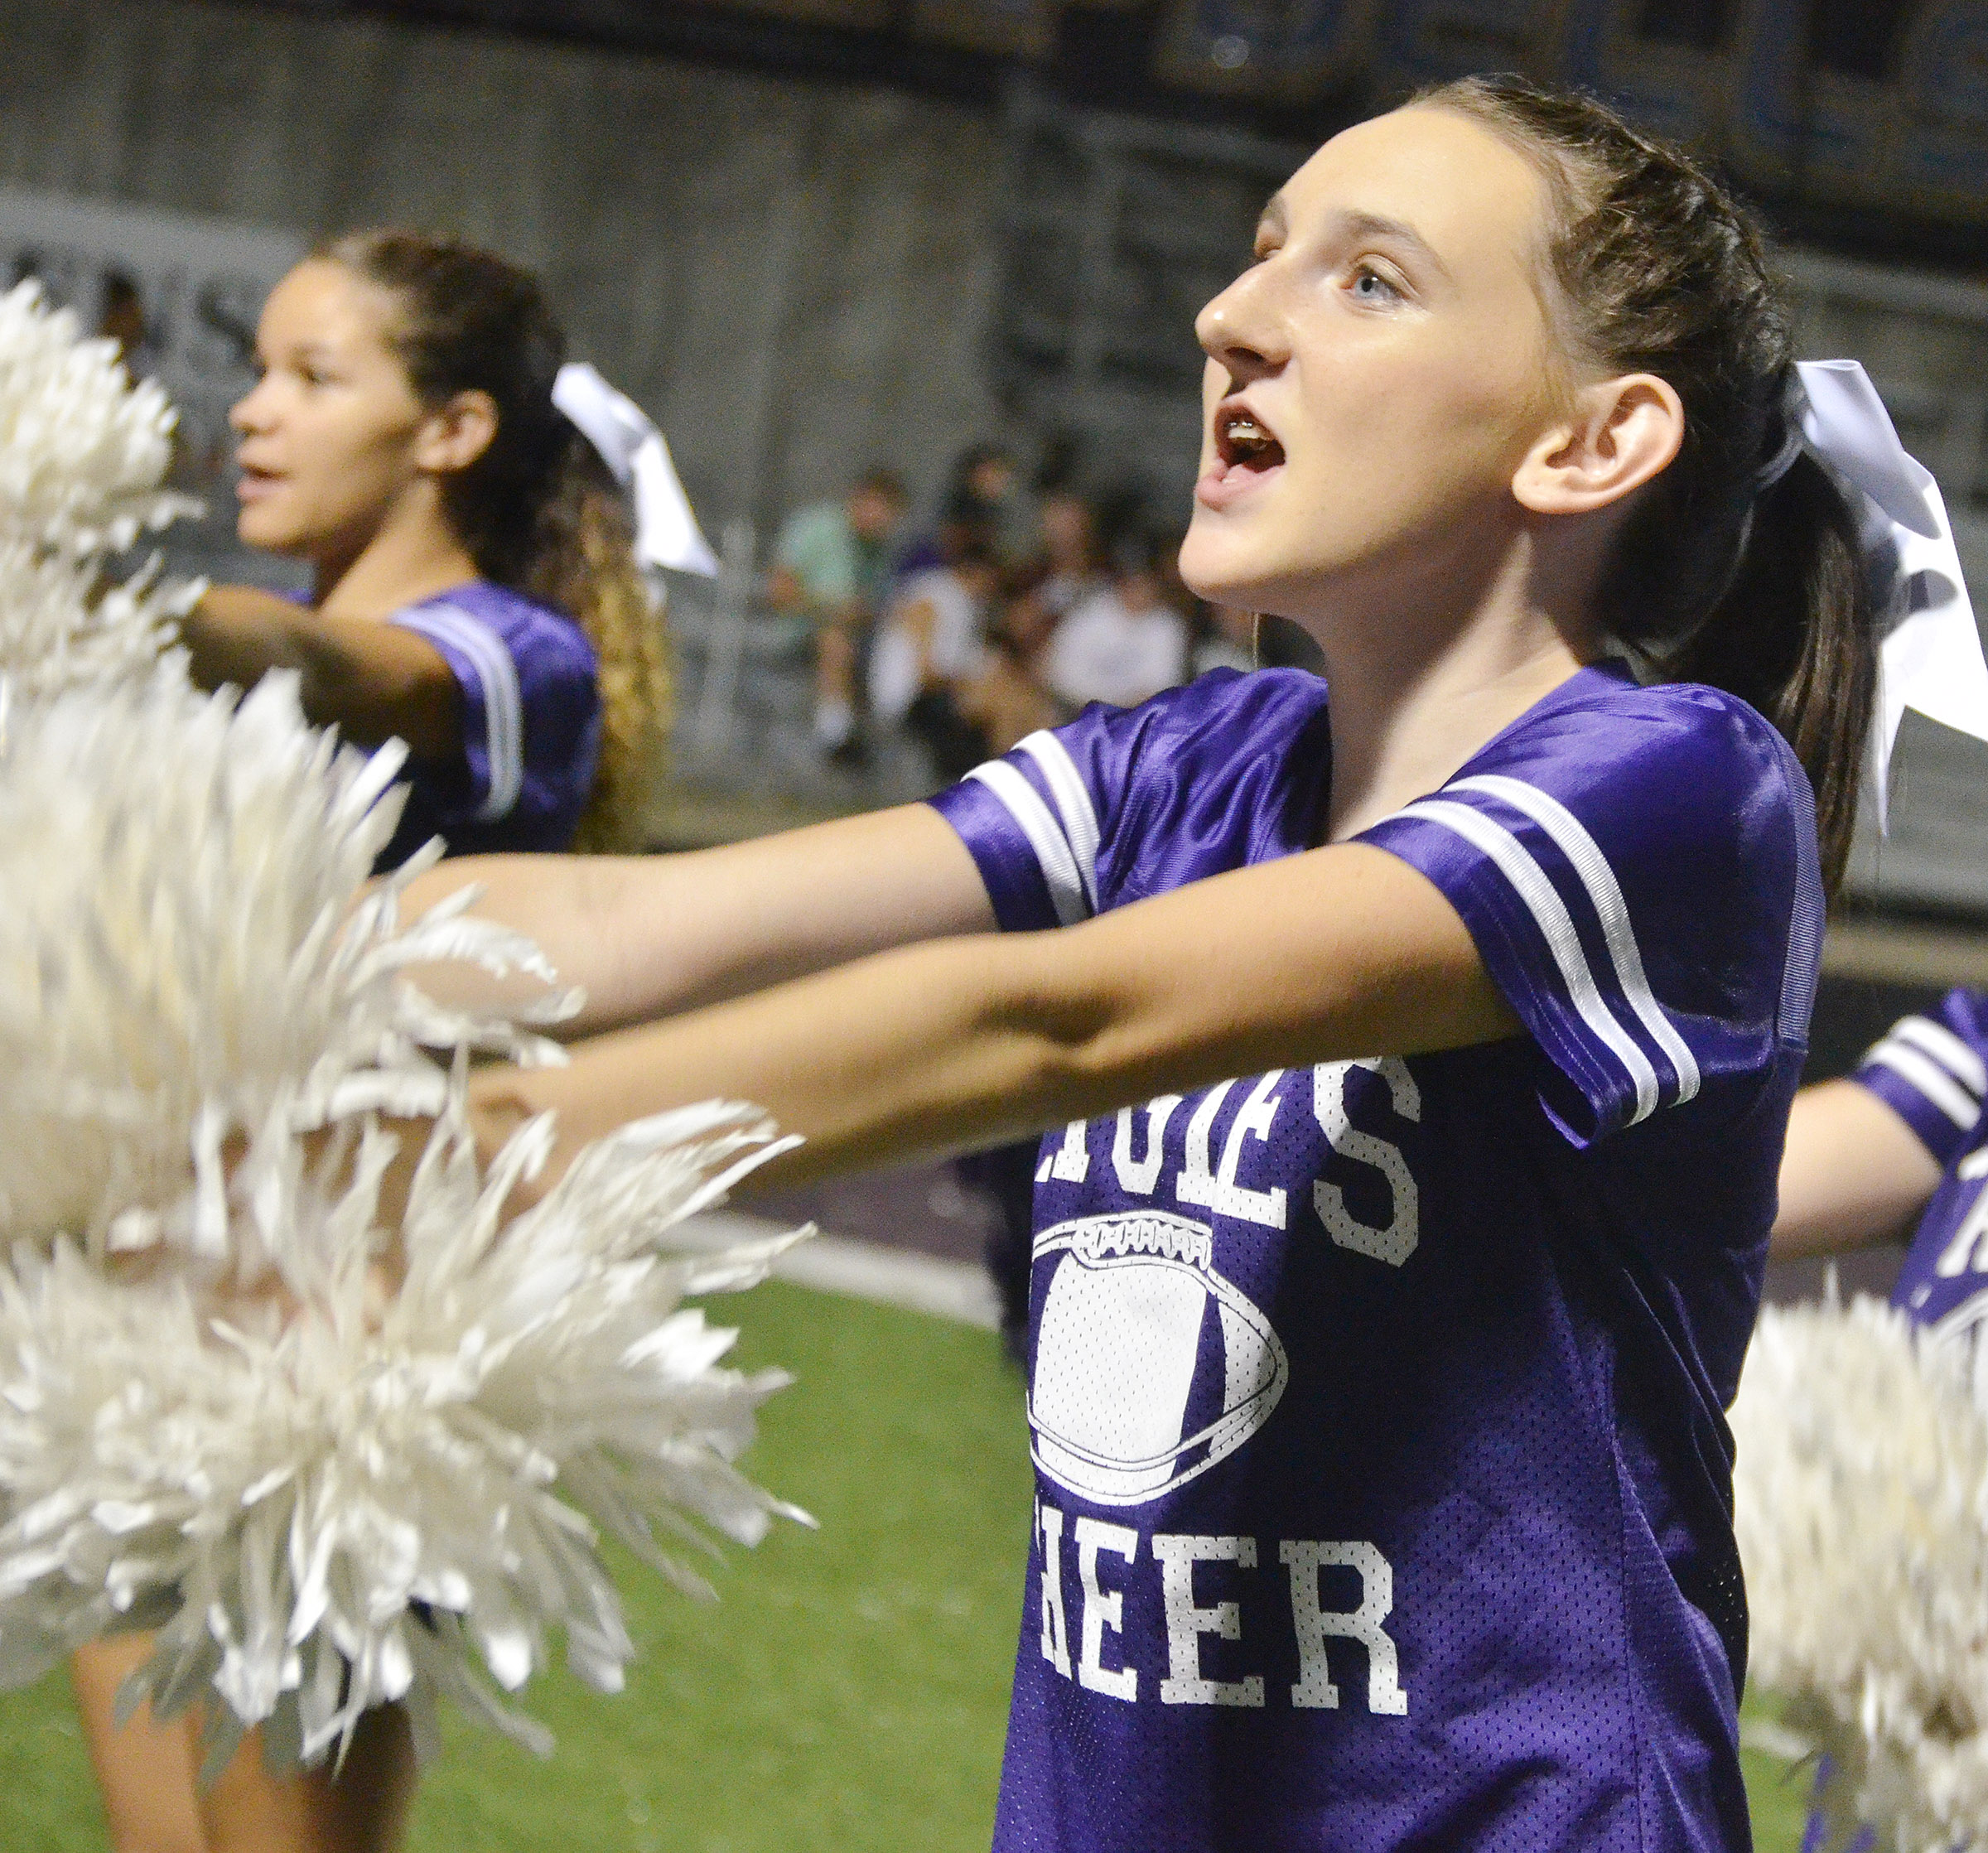 CHS sophomore Zoe McAninch cheers.